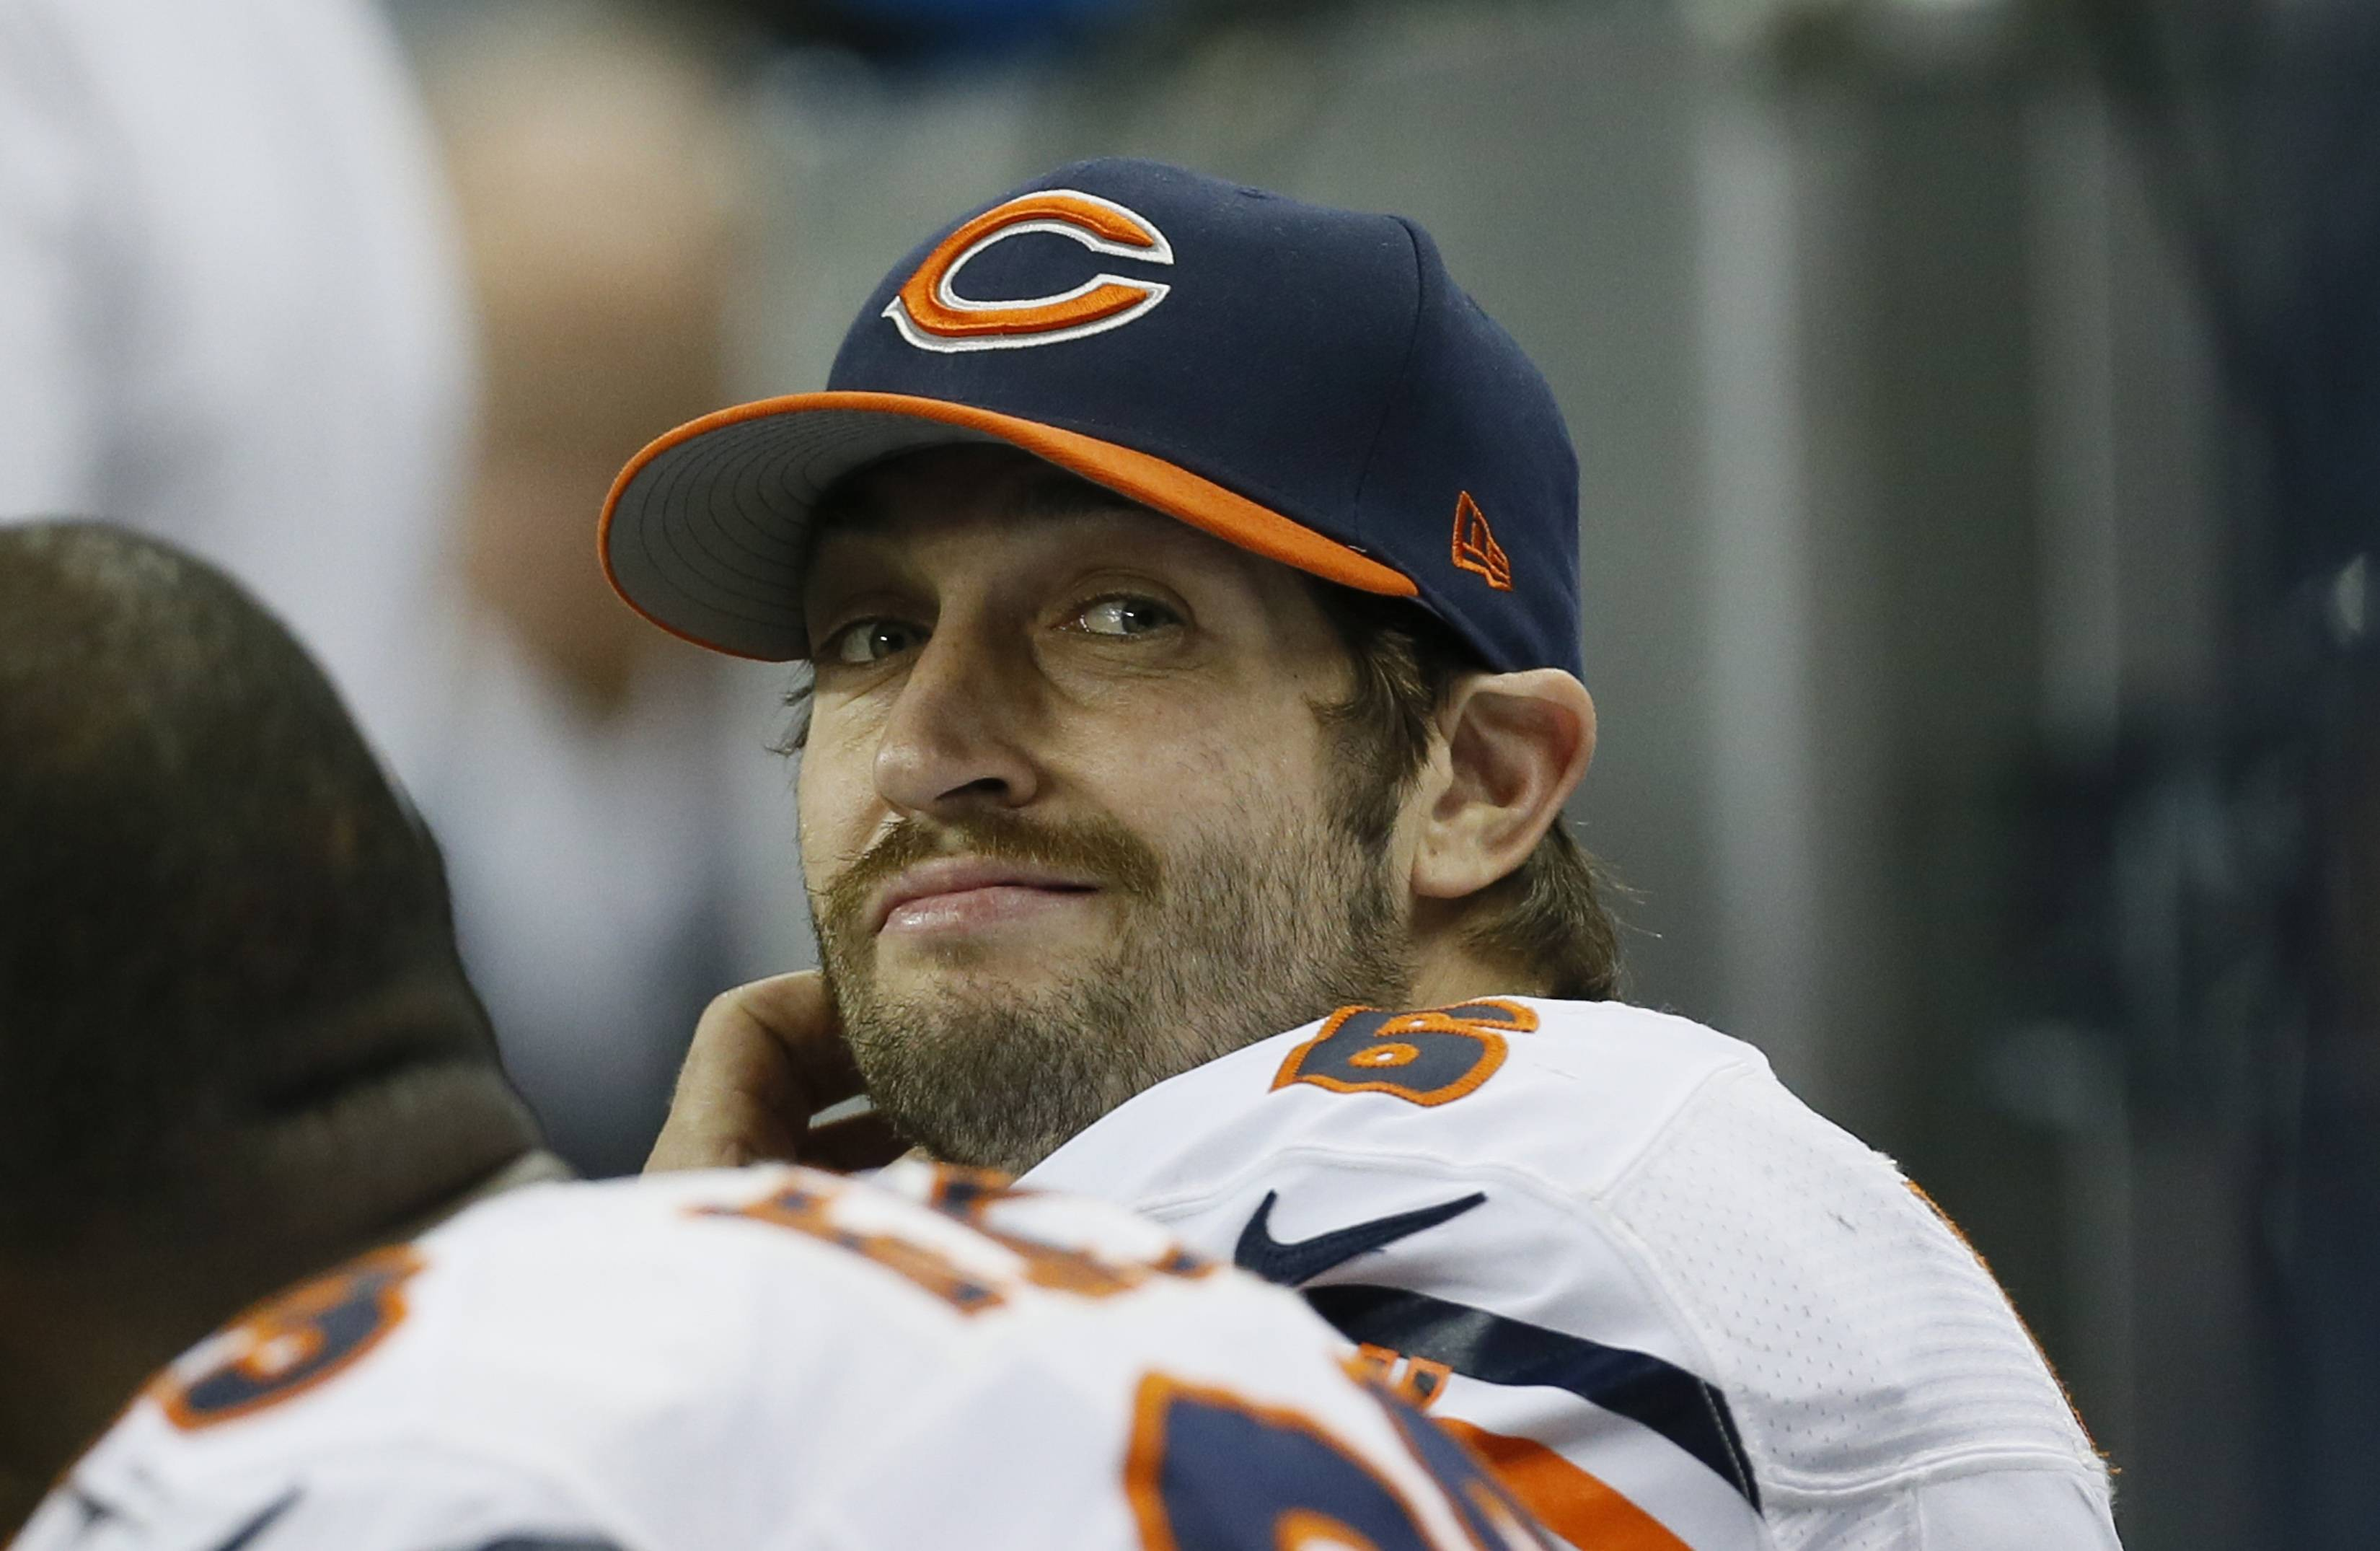 Bears quarterback Jay Cutler looks towards the scoreboard during Thursday's second half in Detroit.